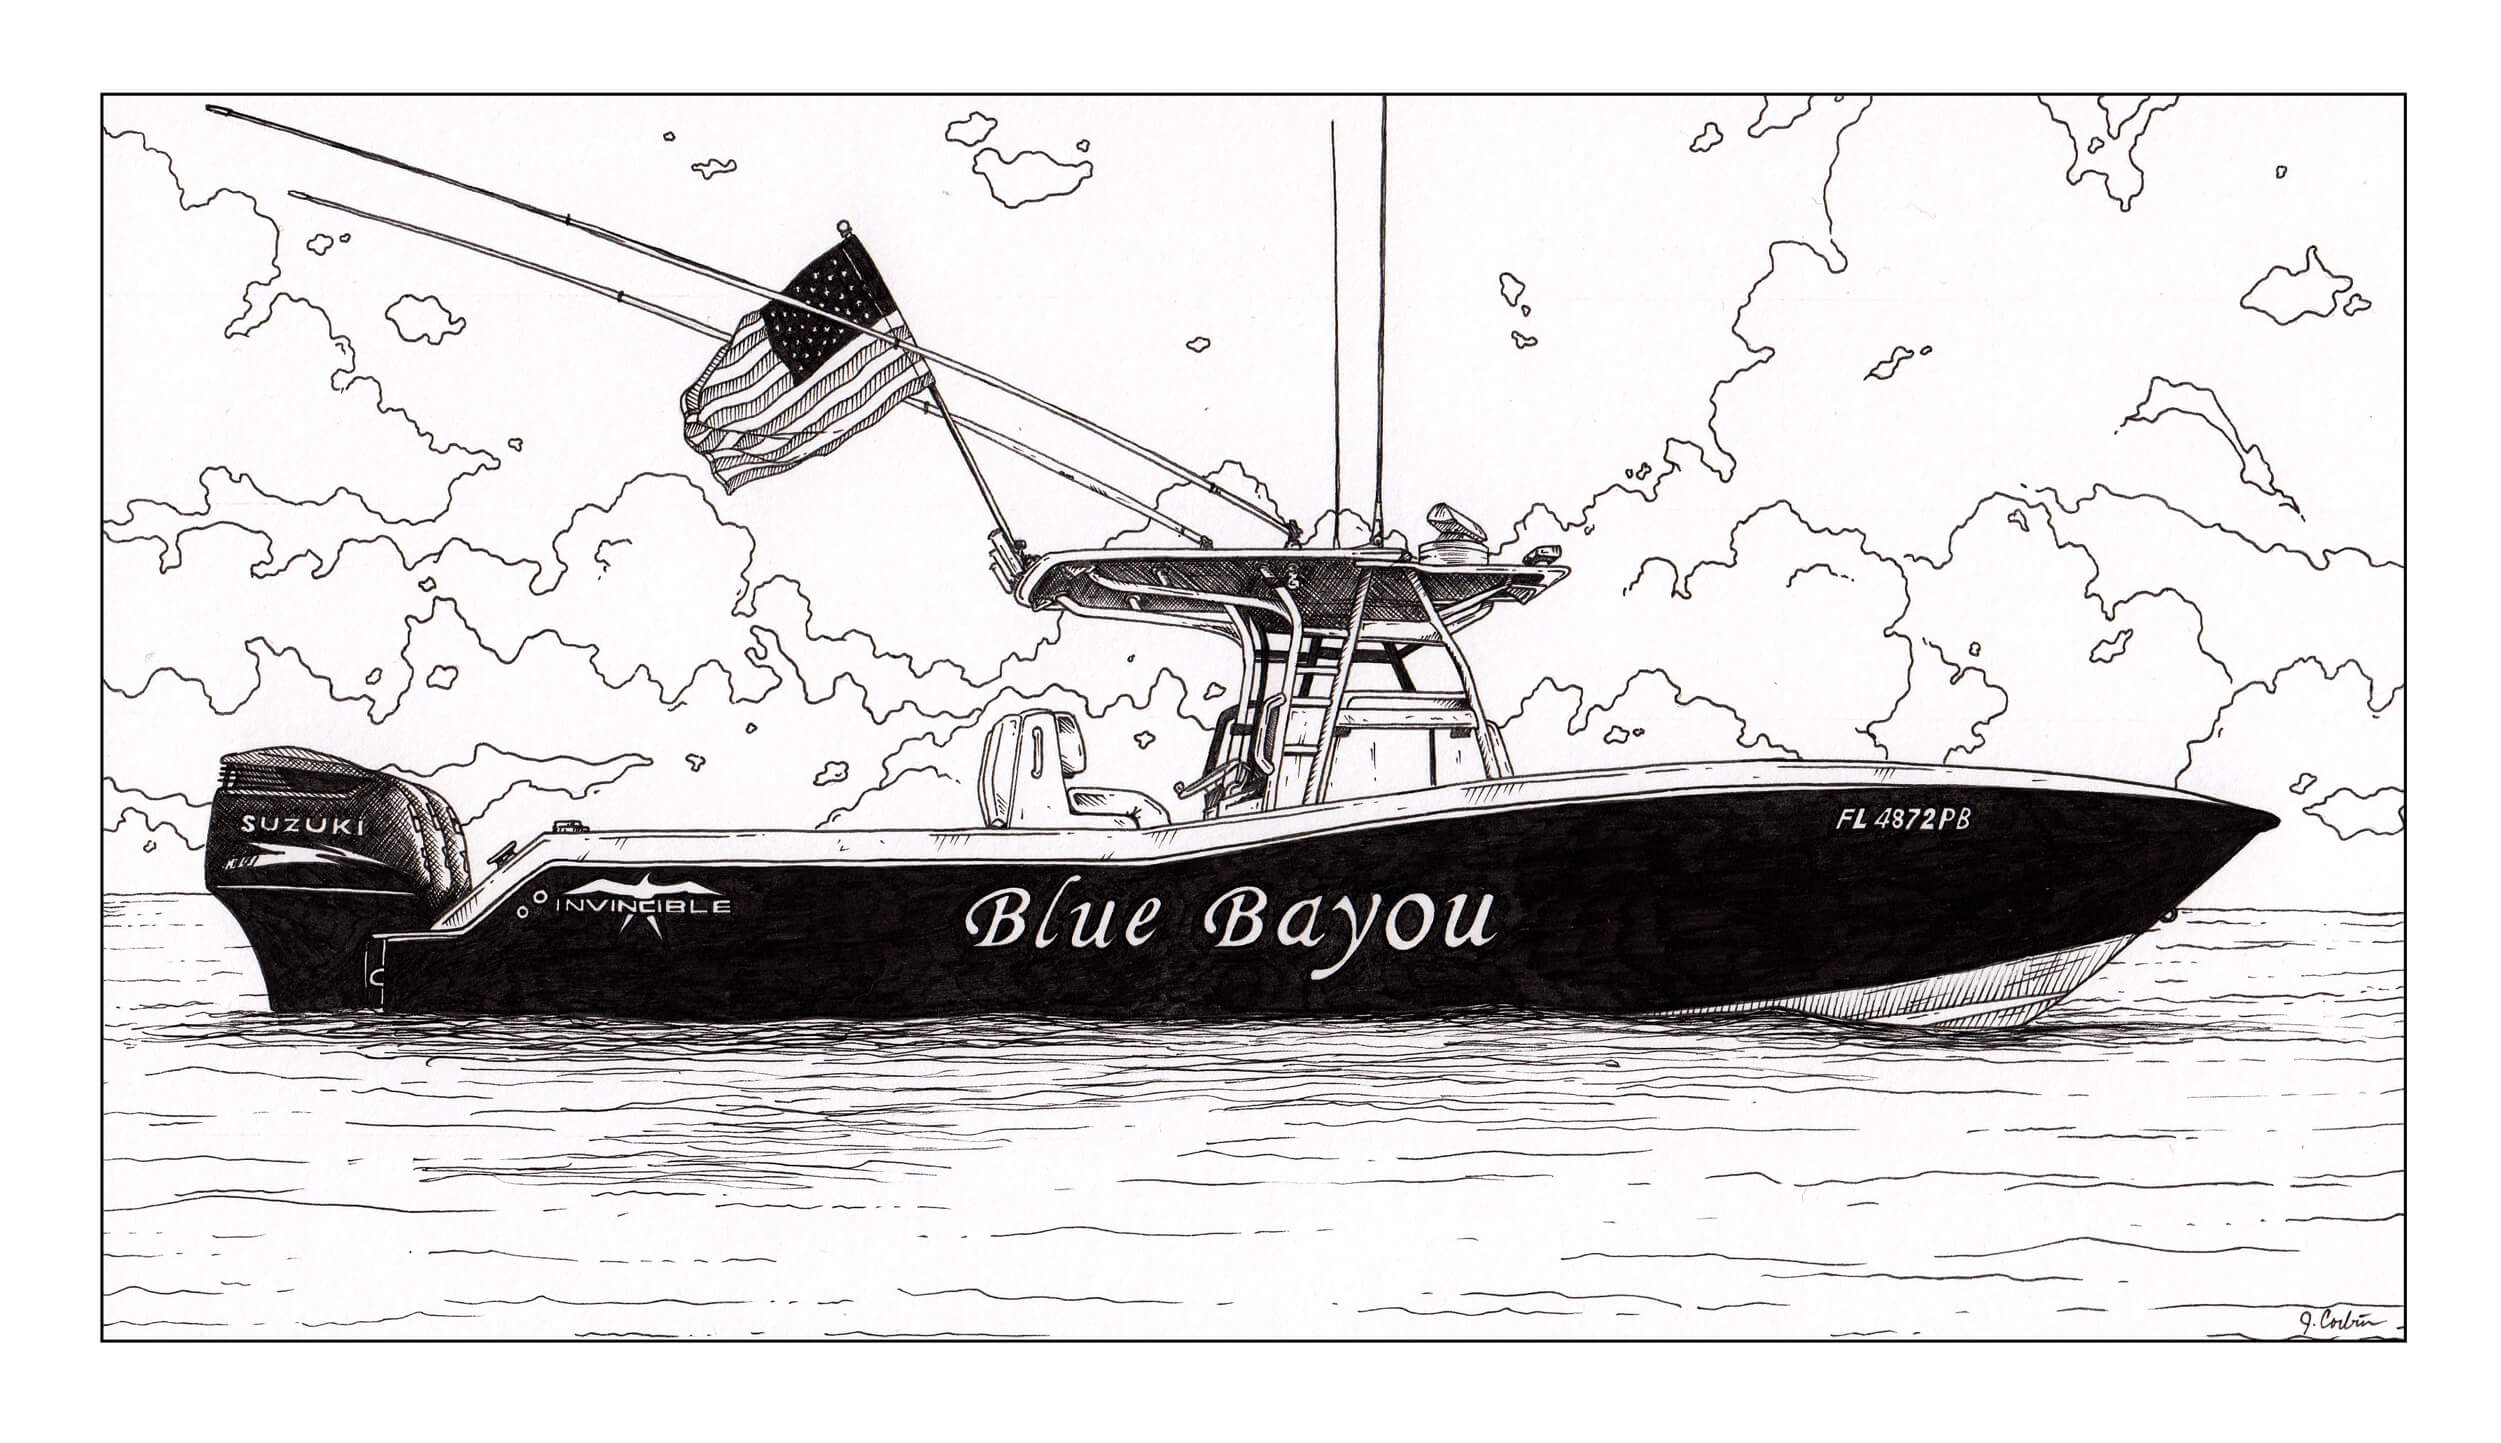 blue bayou boat black and white illustration